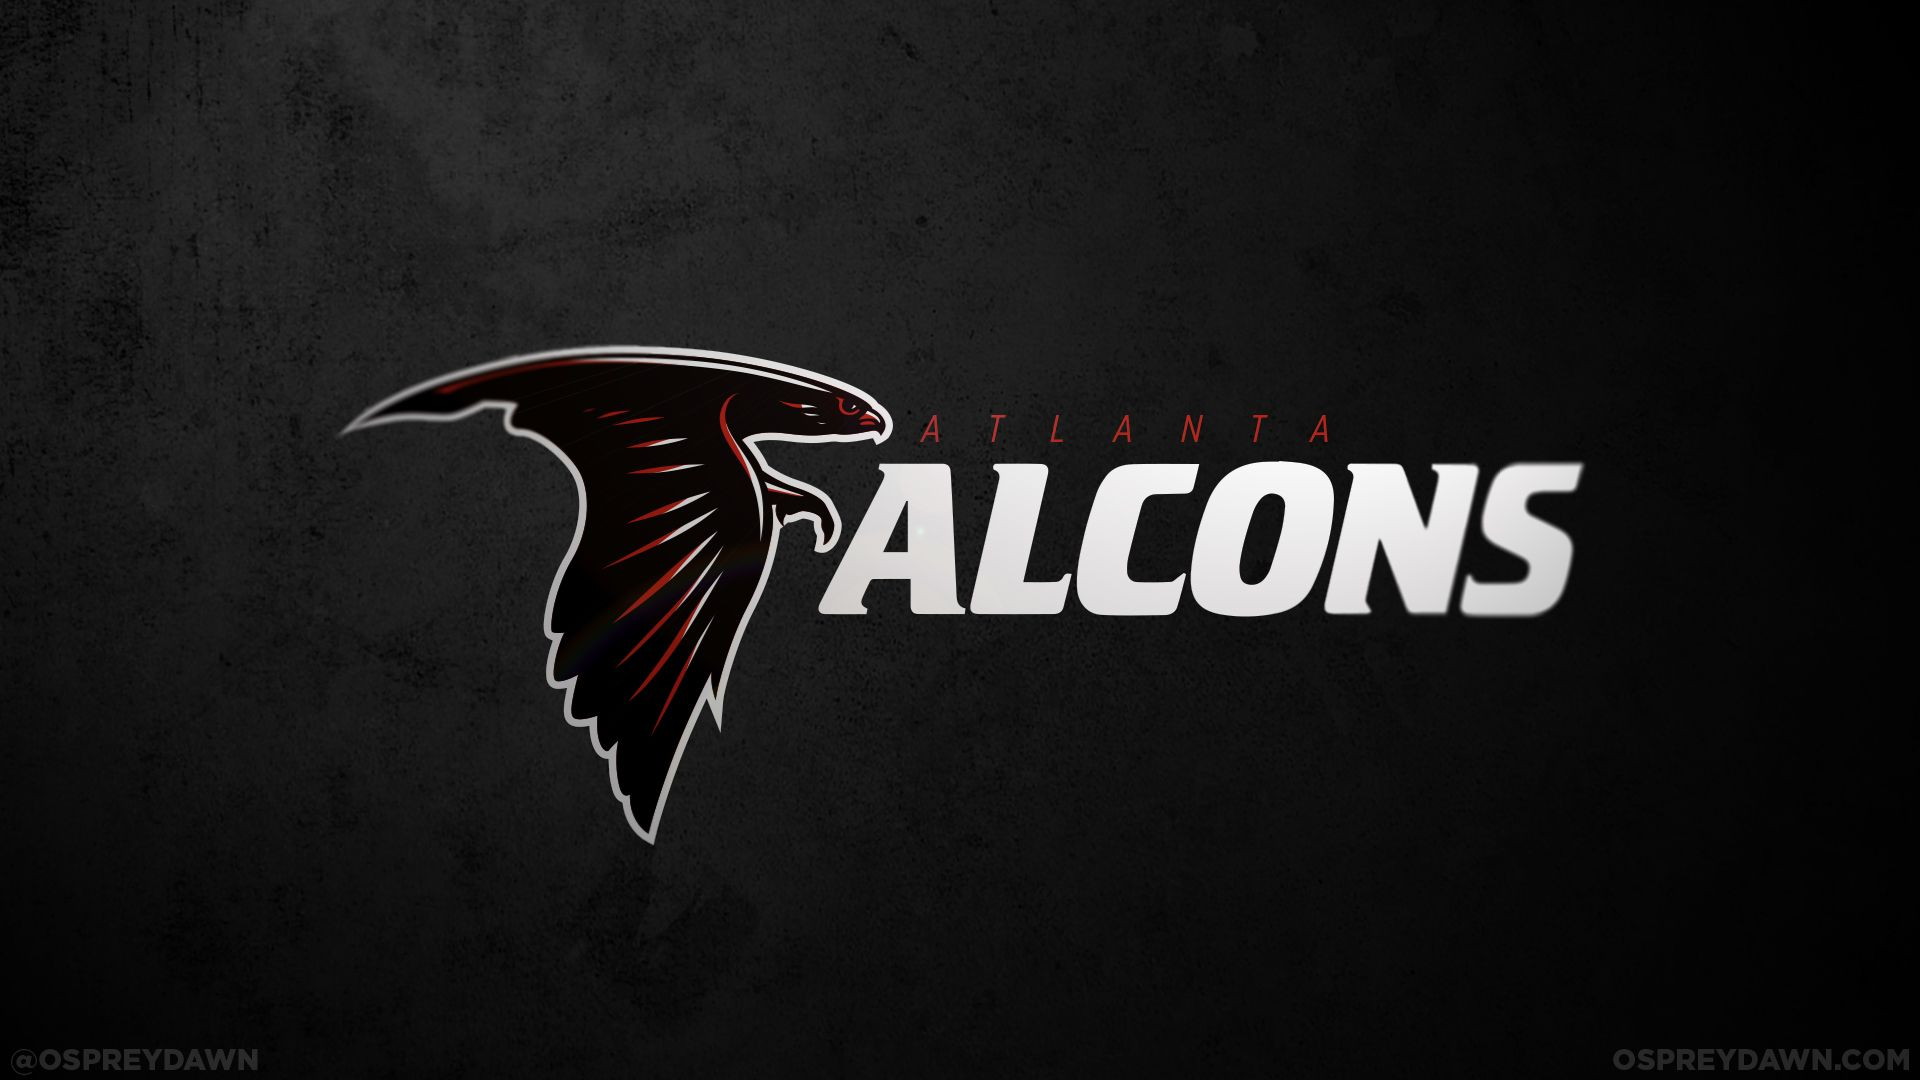 The Atlanta Falcons Nfl Teams Logos 32 Nfl Teams Atlanta Falcons Logo